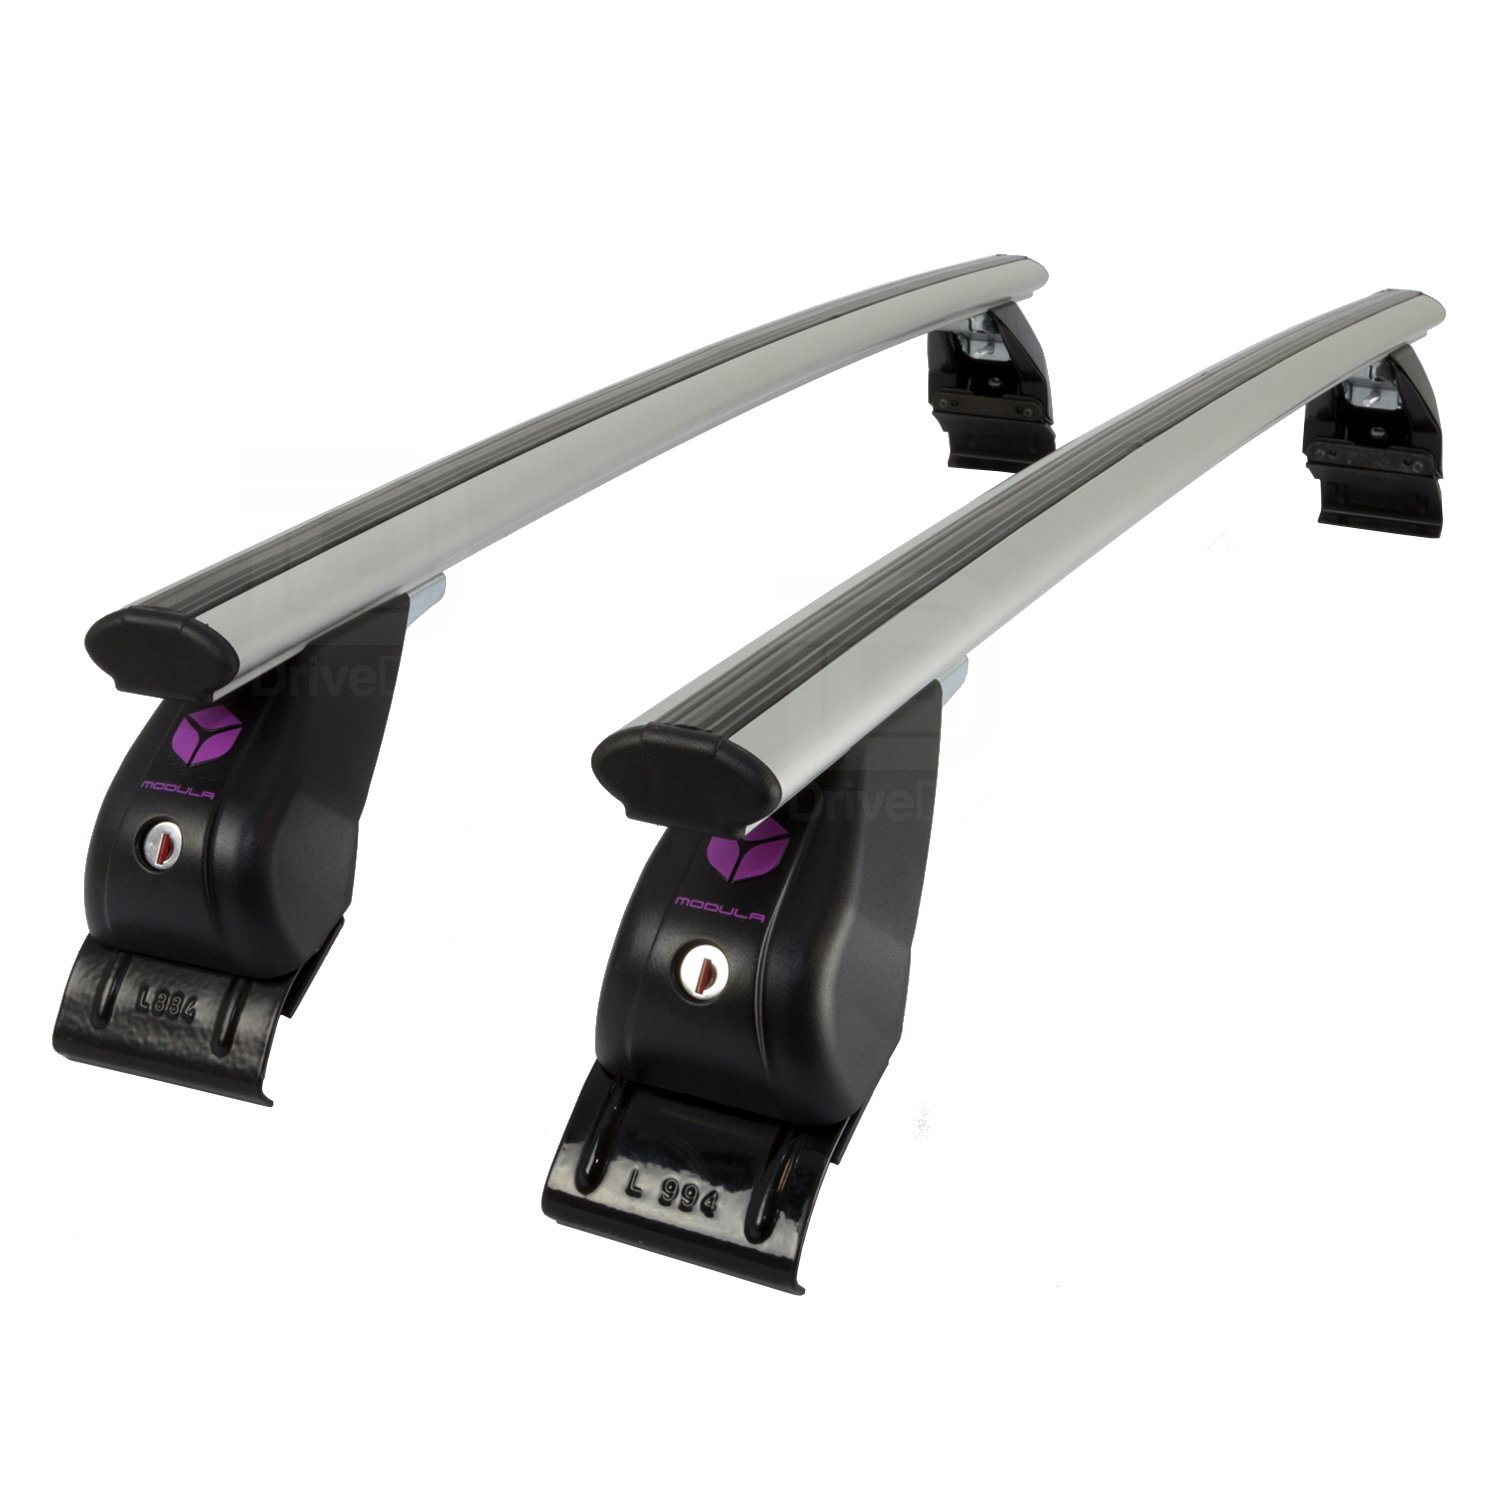 Modula MOCSRR0AL-0834 Aero Aluminium Silver Roof Bar Set (Normal Roof)